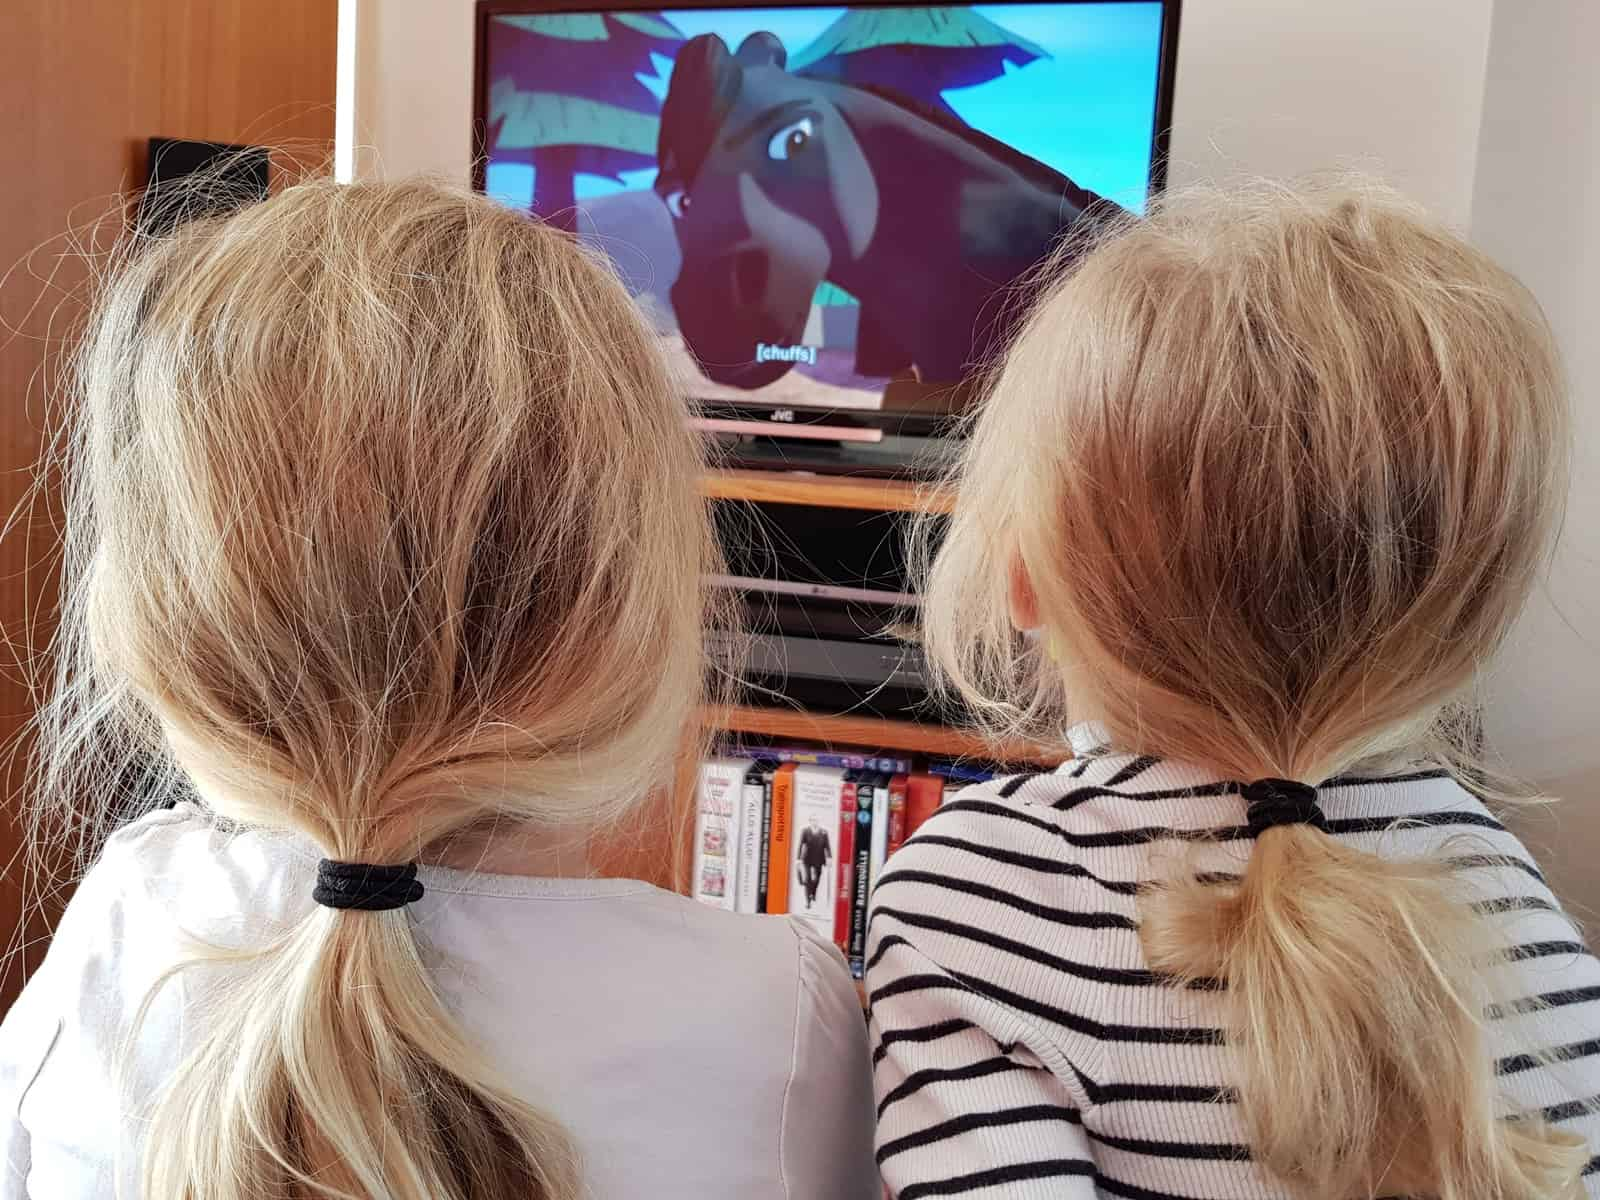 The Spirit Riding Free Stable Sleepover Competition children watching horse on television